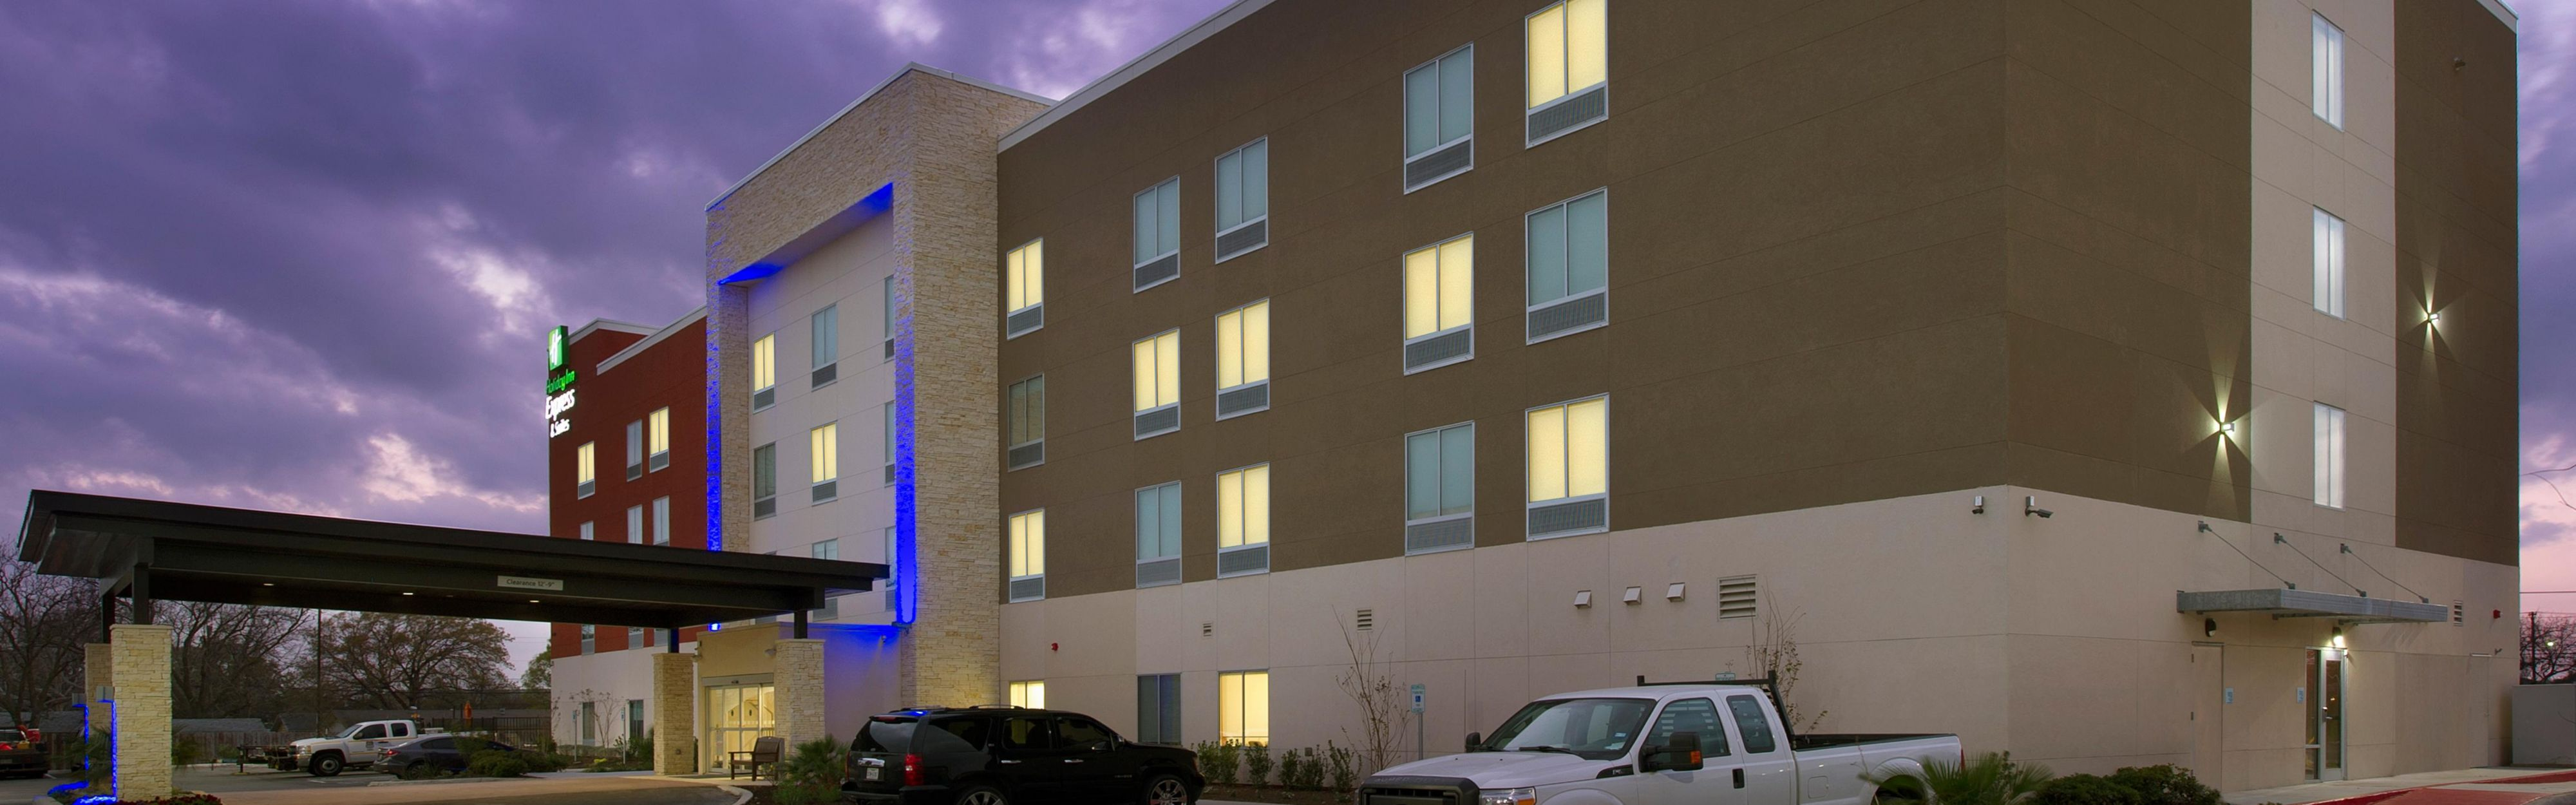 Holiday Inn Express & Suites New Braunfels image 0